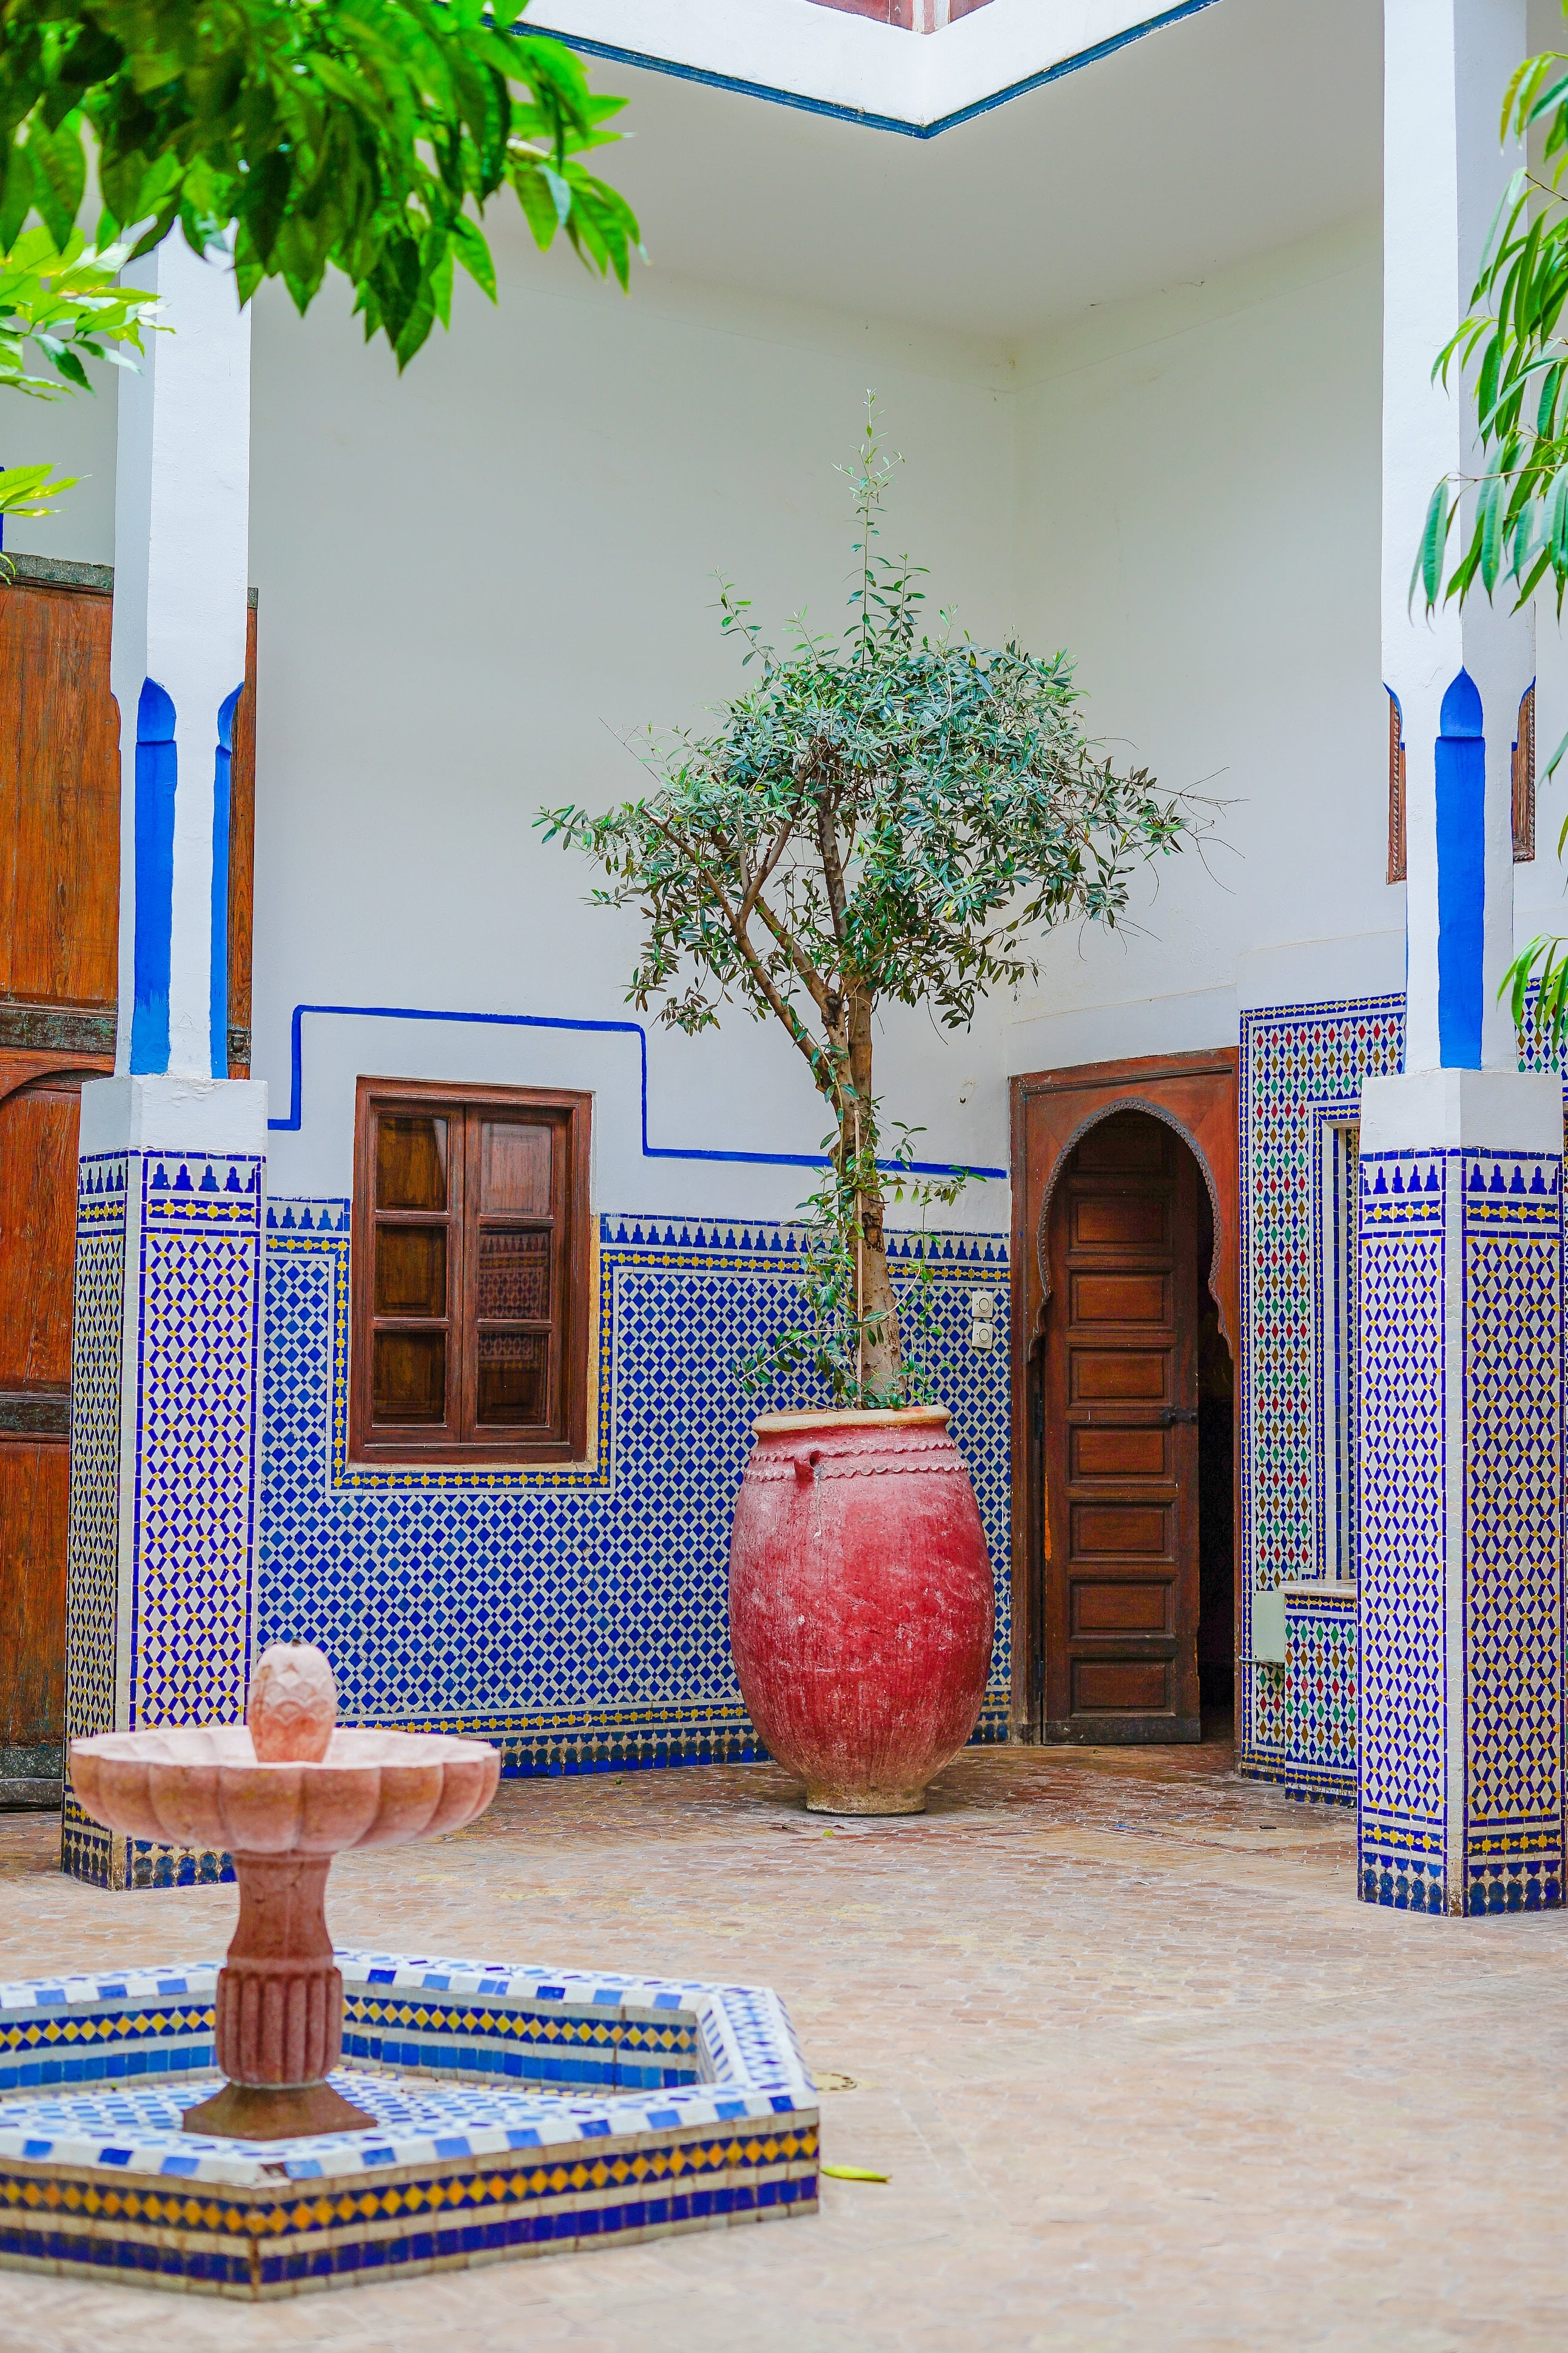 OUR MOROCCO ITINERARY - How to spend 2 weeks in Morocco, including where to go and how to get there! | Morocco Itinerary - Morocco Travel - How To Plan A Trip To Morocco - How to spend two weeks in Morocco - what to see in Morocco - Planning a trip to Morocco - Morocco Trip Itinerary - Morocco Travel - #travel #morocco #travelblog